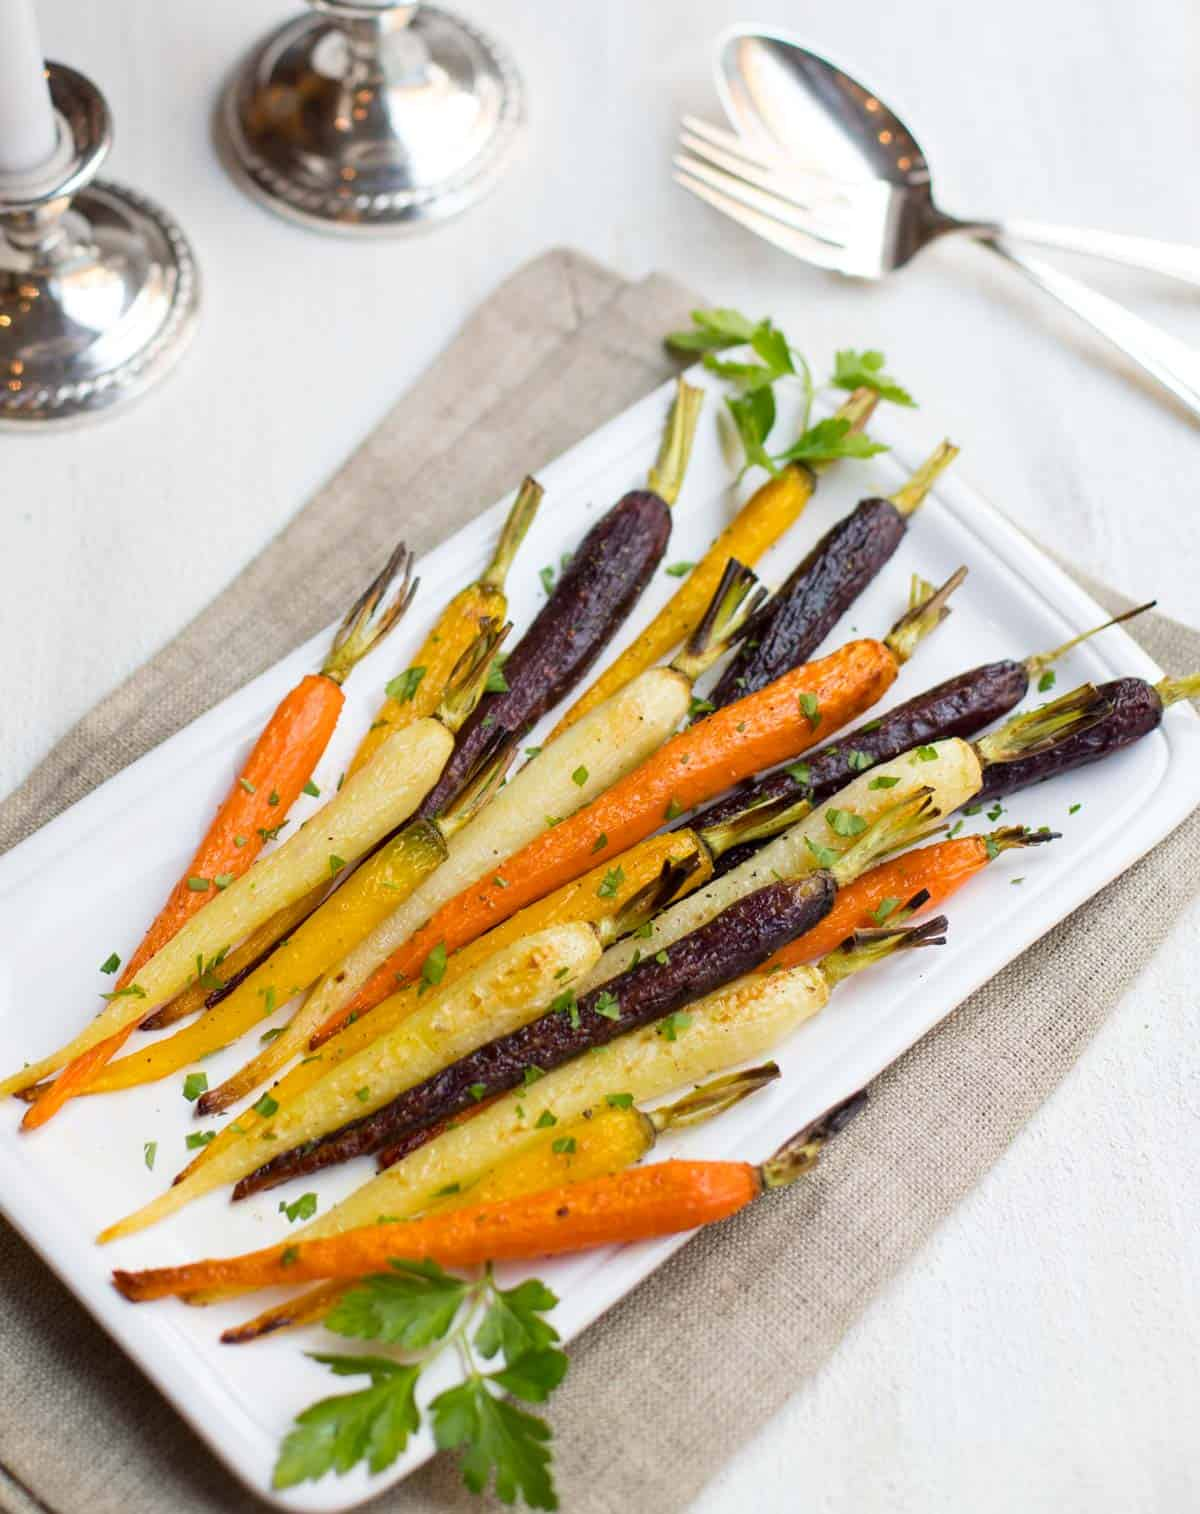 Oven Roasted Multi-Colored Carrots on platter